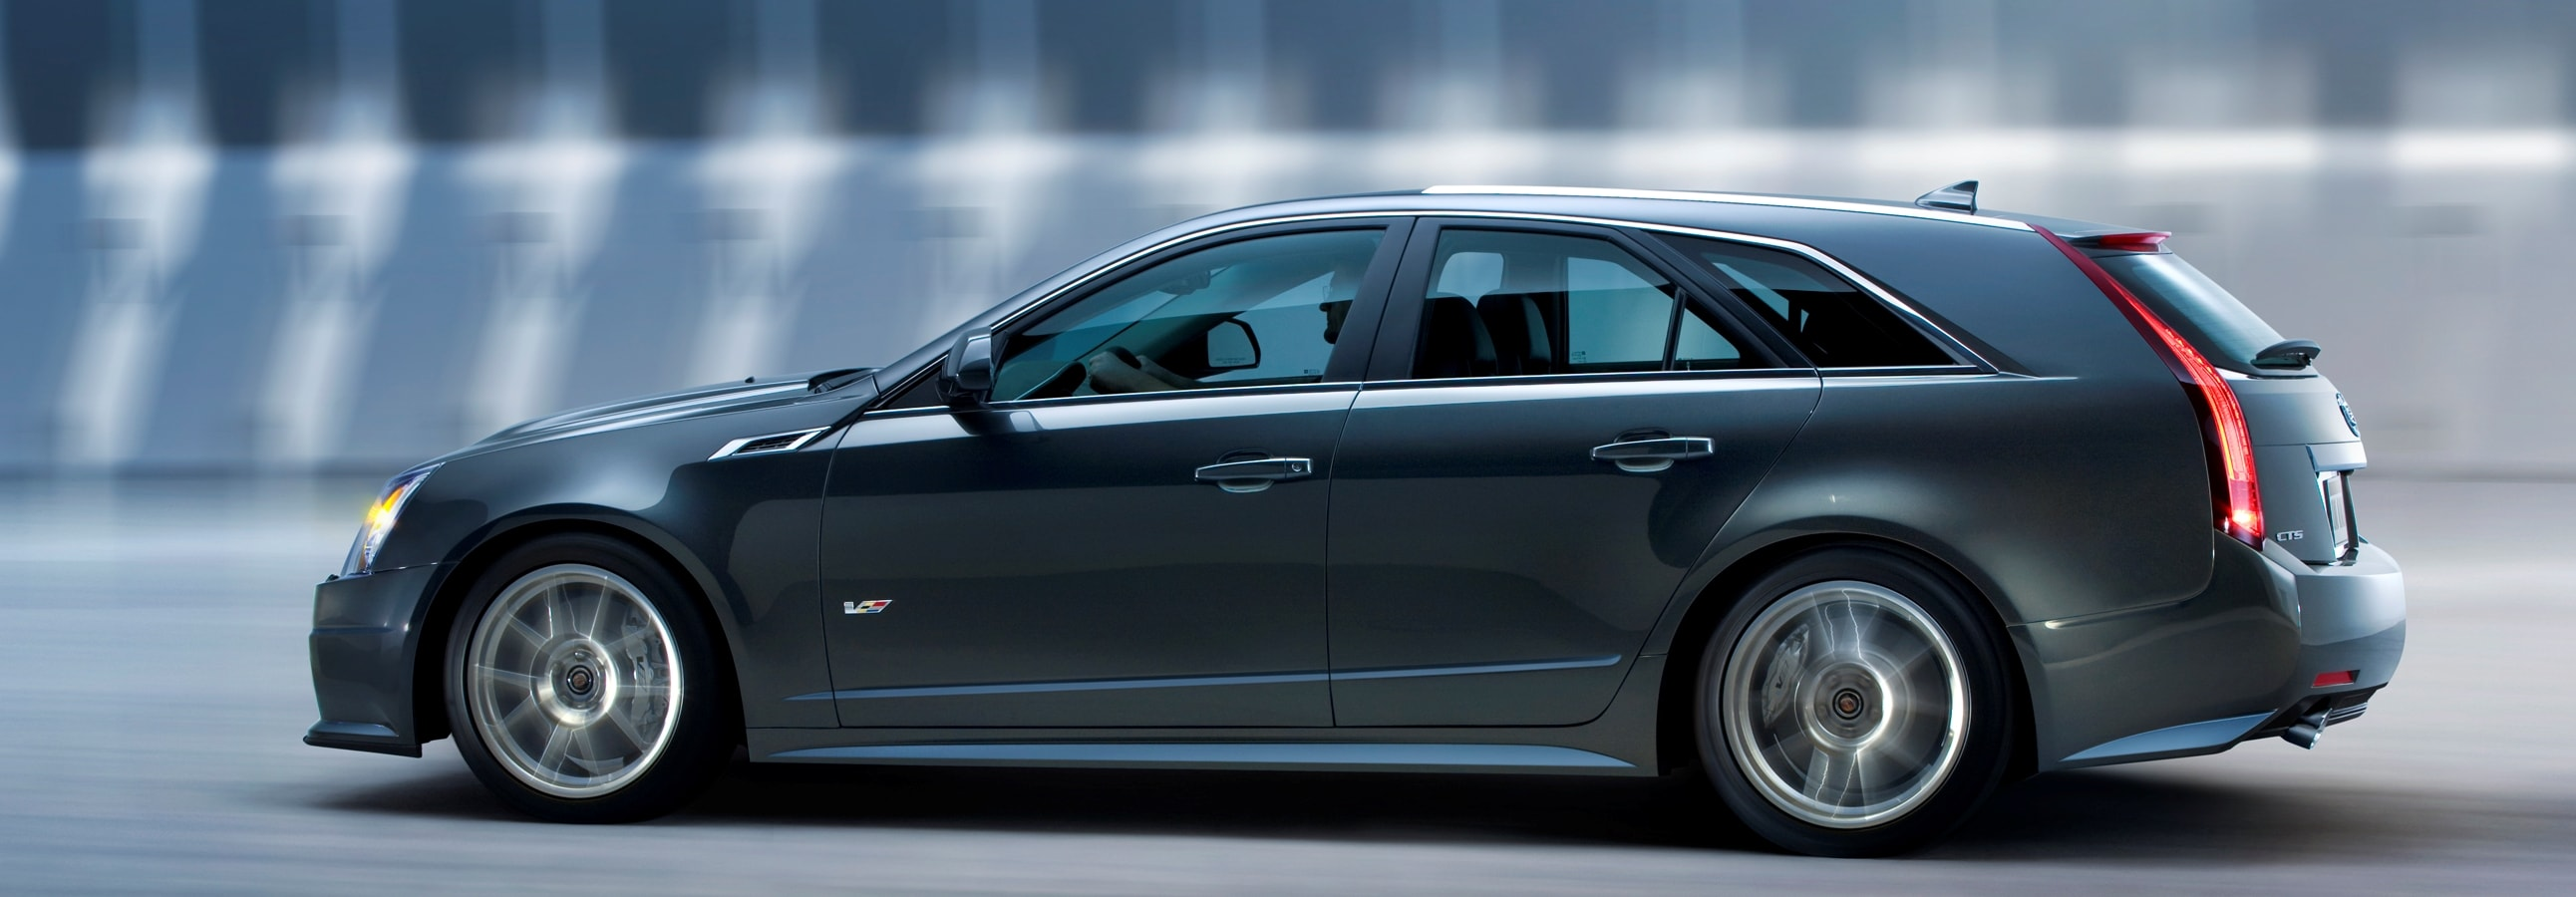 Cadillac CTS-V Wagon Pictures